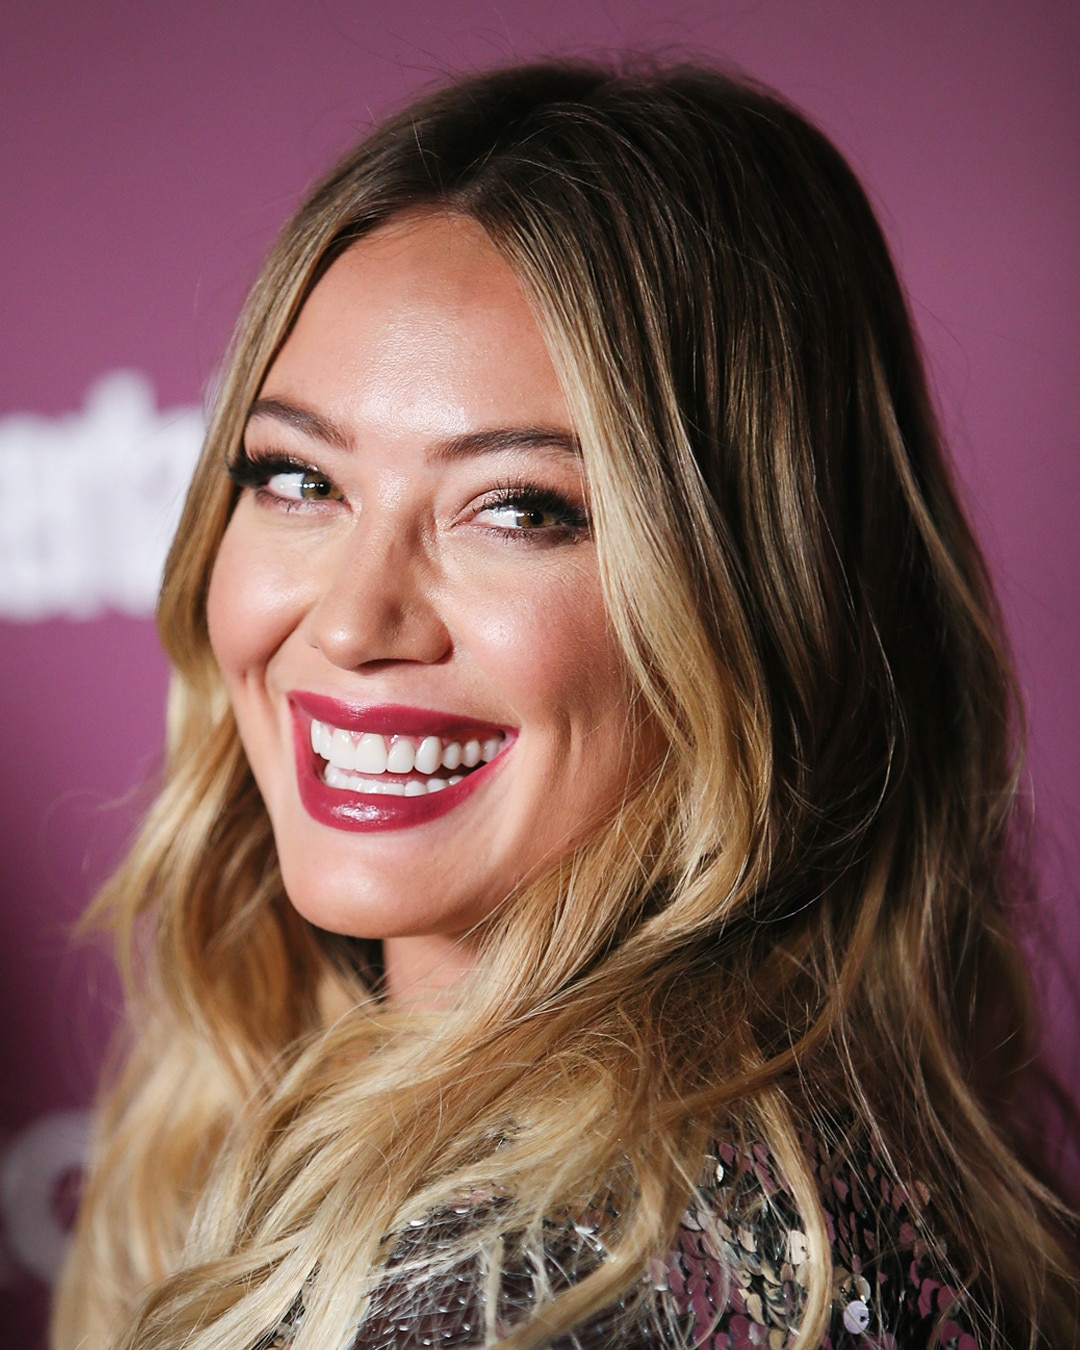 Fotos Hilary Duff nudes (43 photo), Topless, Paparazzi, Boobs, butt 2019